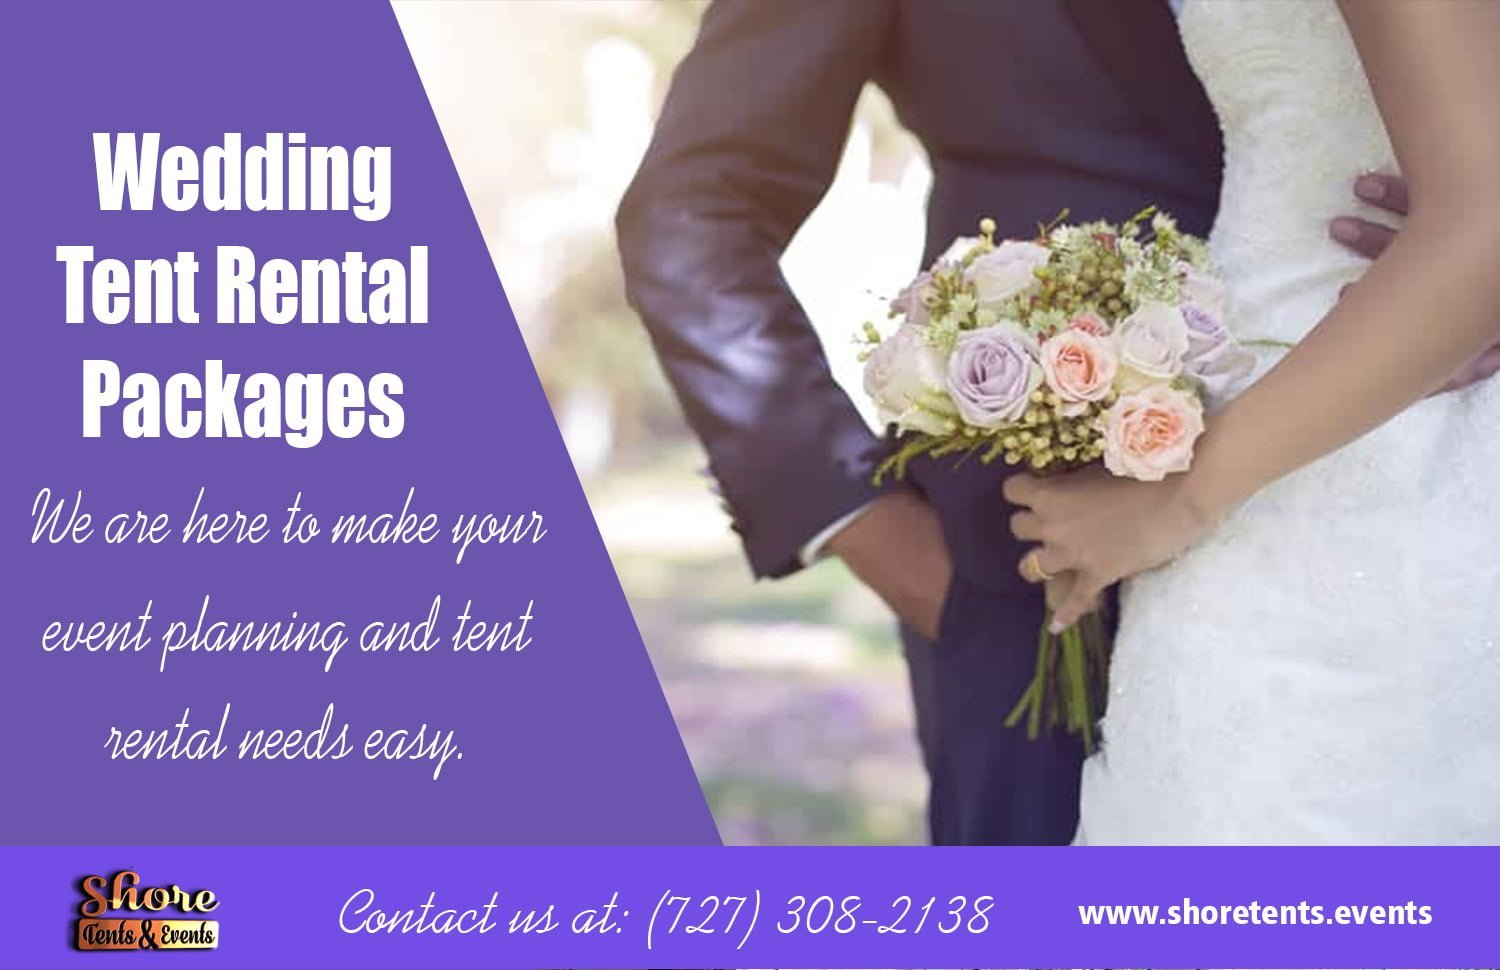 Wedding Tent Rental Packages